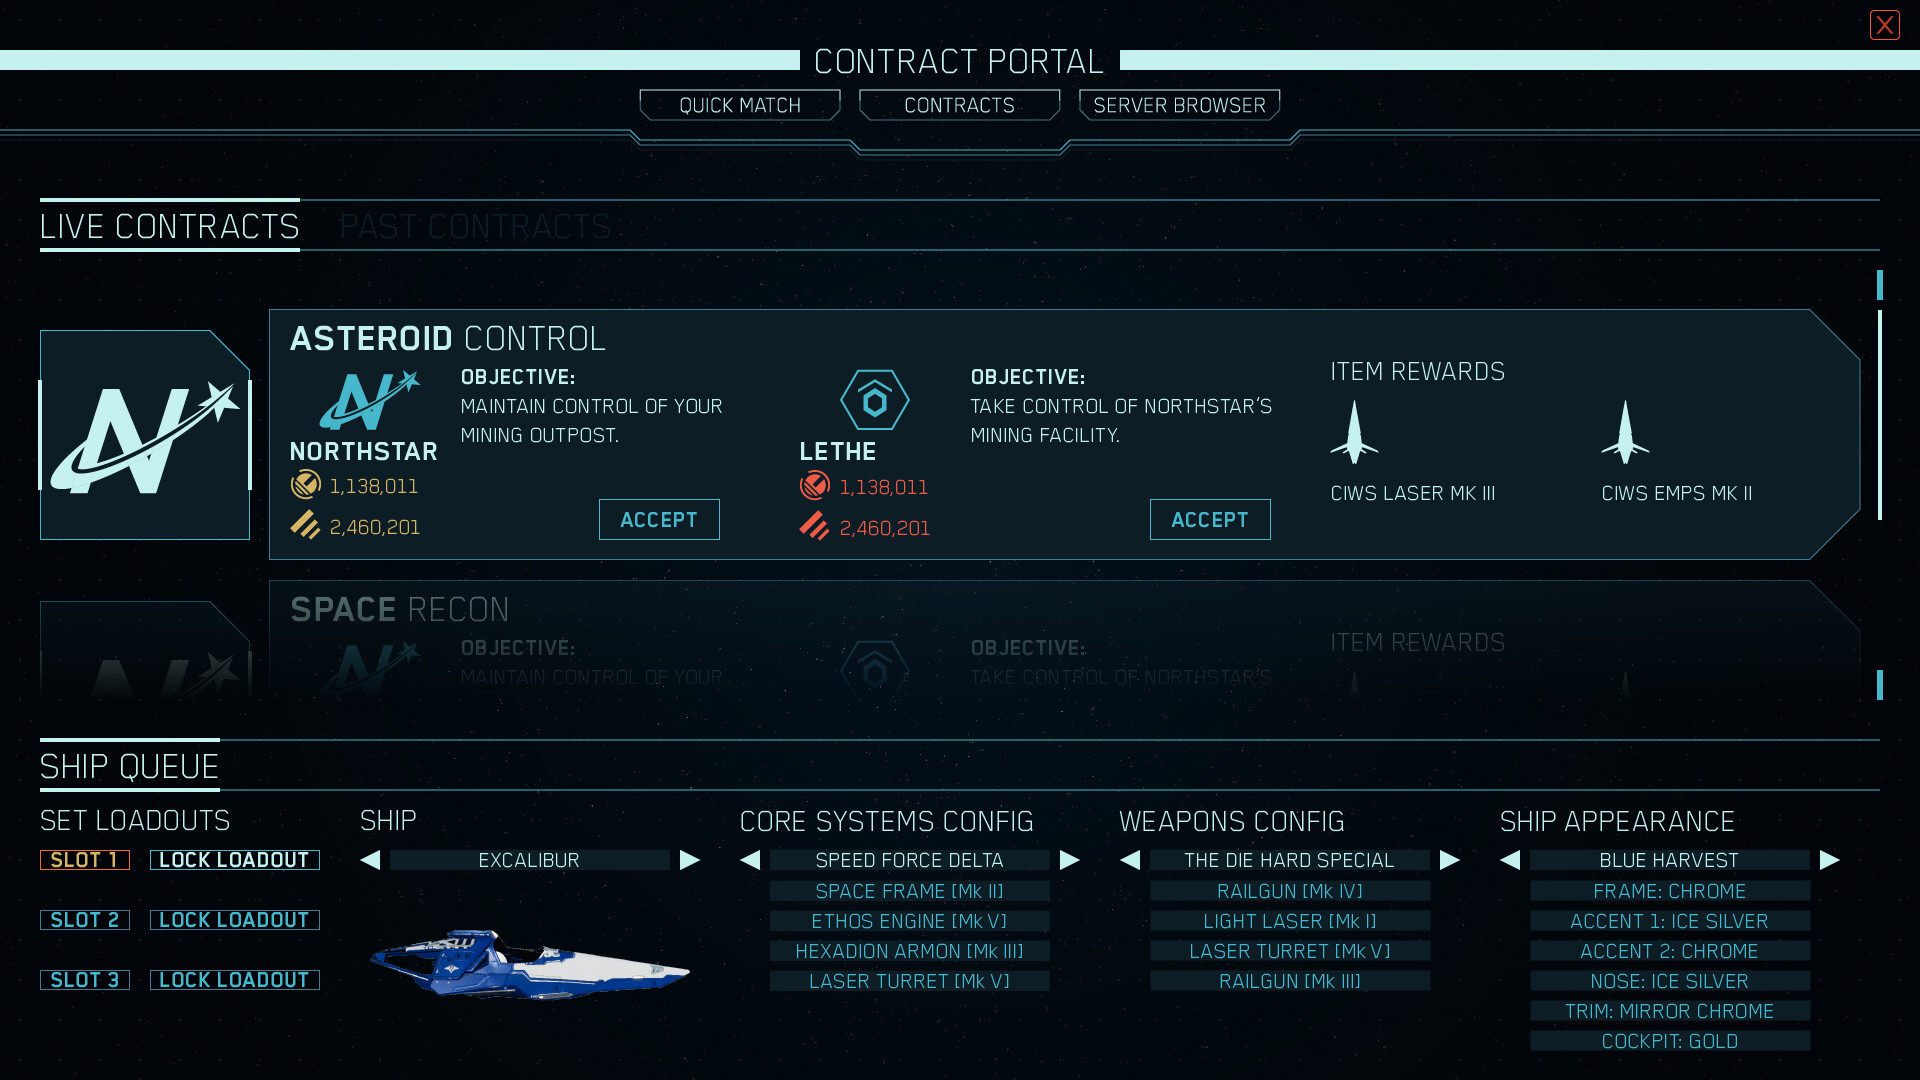 An alternate contract portal design. This one had a lot of negative space that wasn't being utilized well, and there was just more info we wanted available for the ship queue section, so it was redesigned as a vertical module.